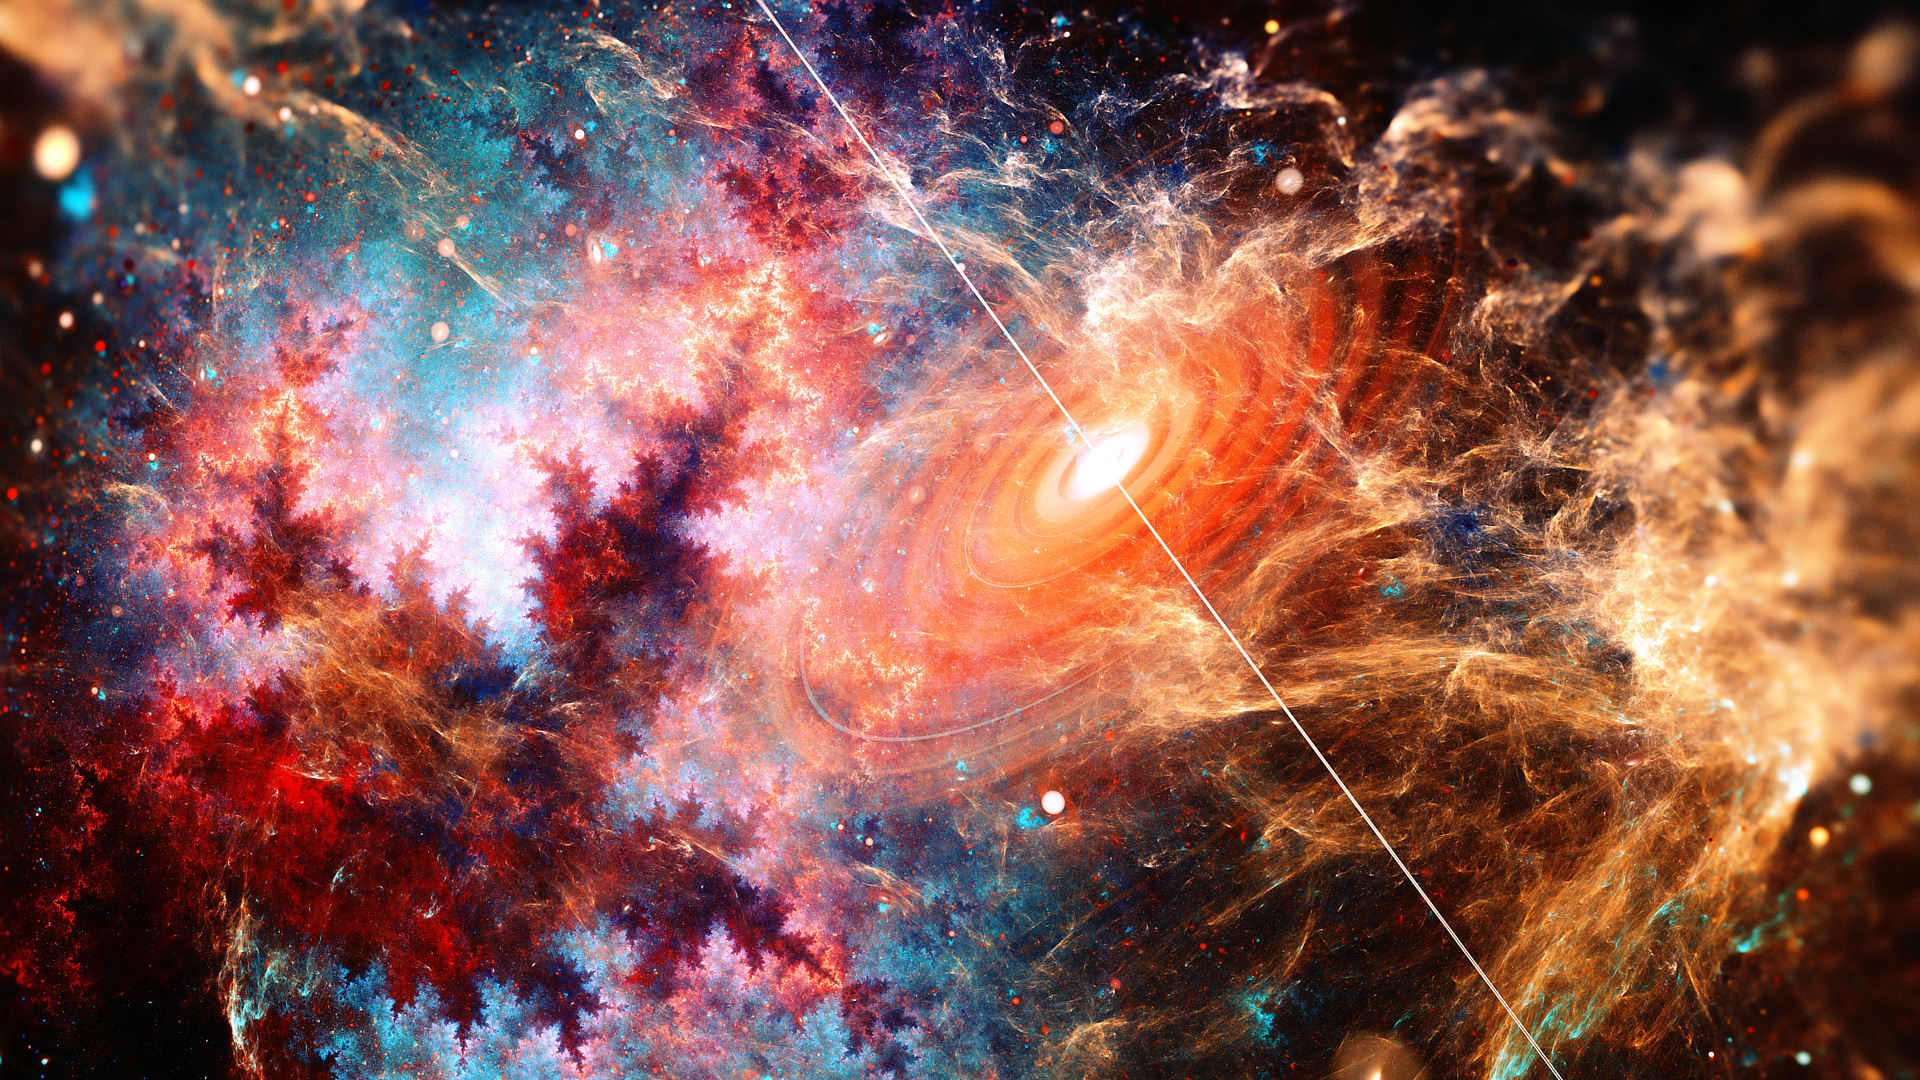 1920x1080 Beautiful Galaxy Fractal Art Laptop Full Hd 1080p Hd 4k Wallpapers Images Backgrounds Photos And Pictures